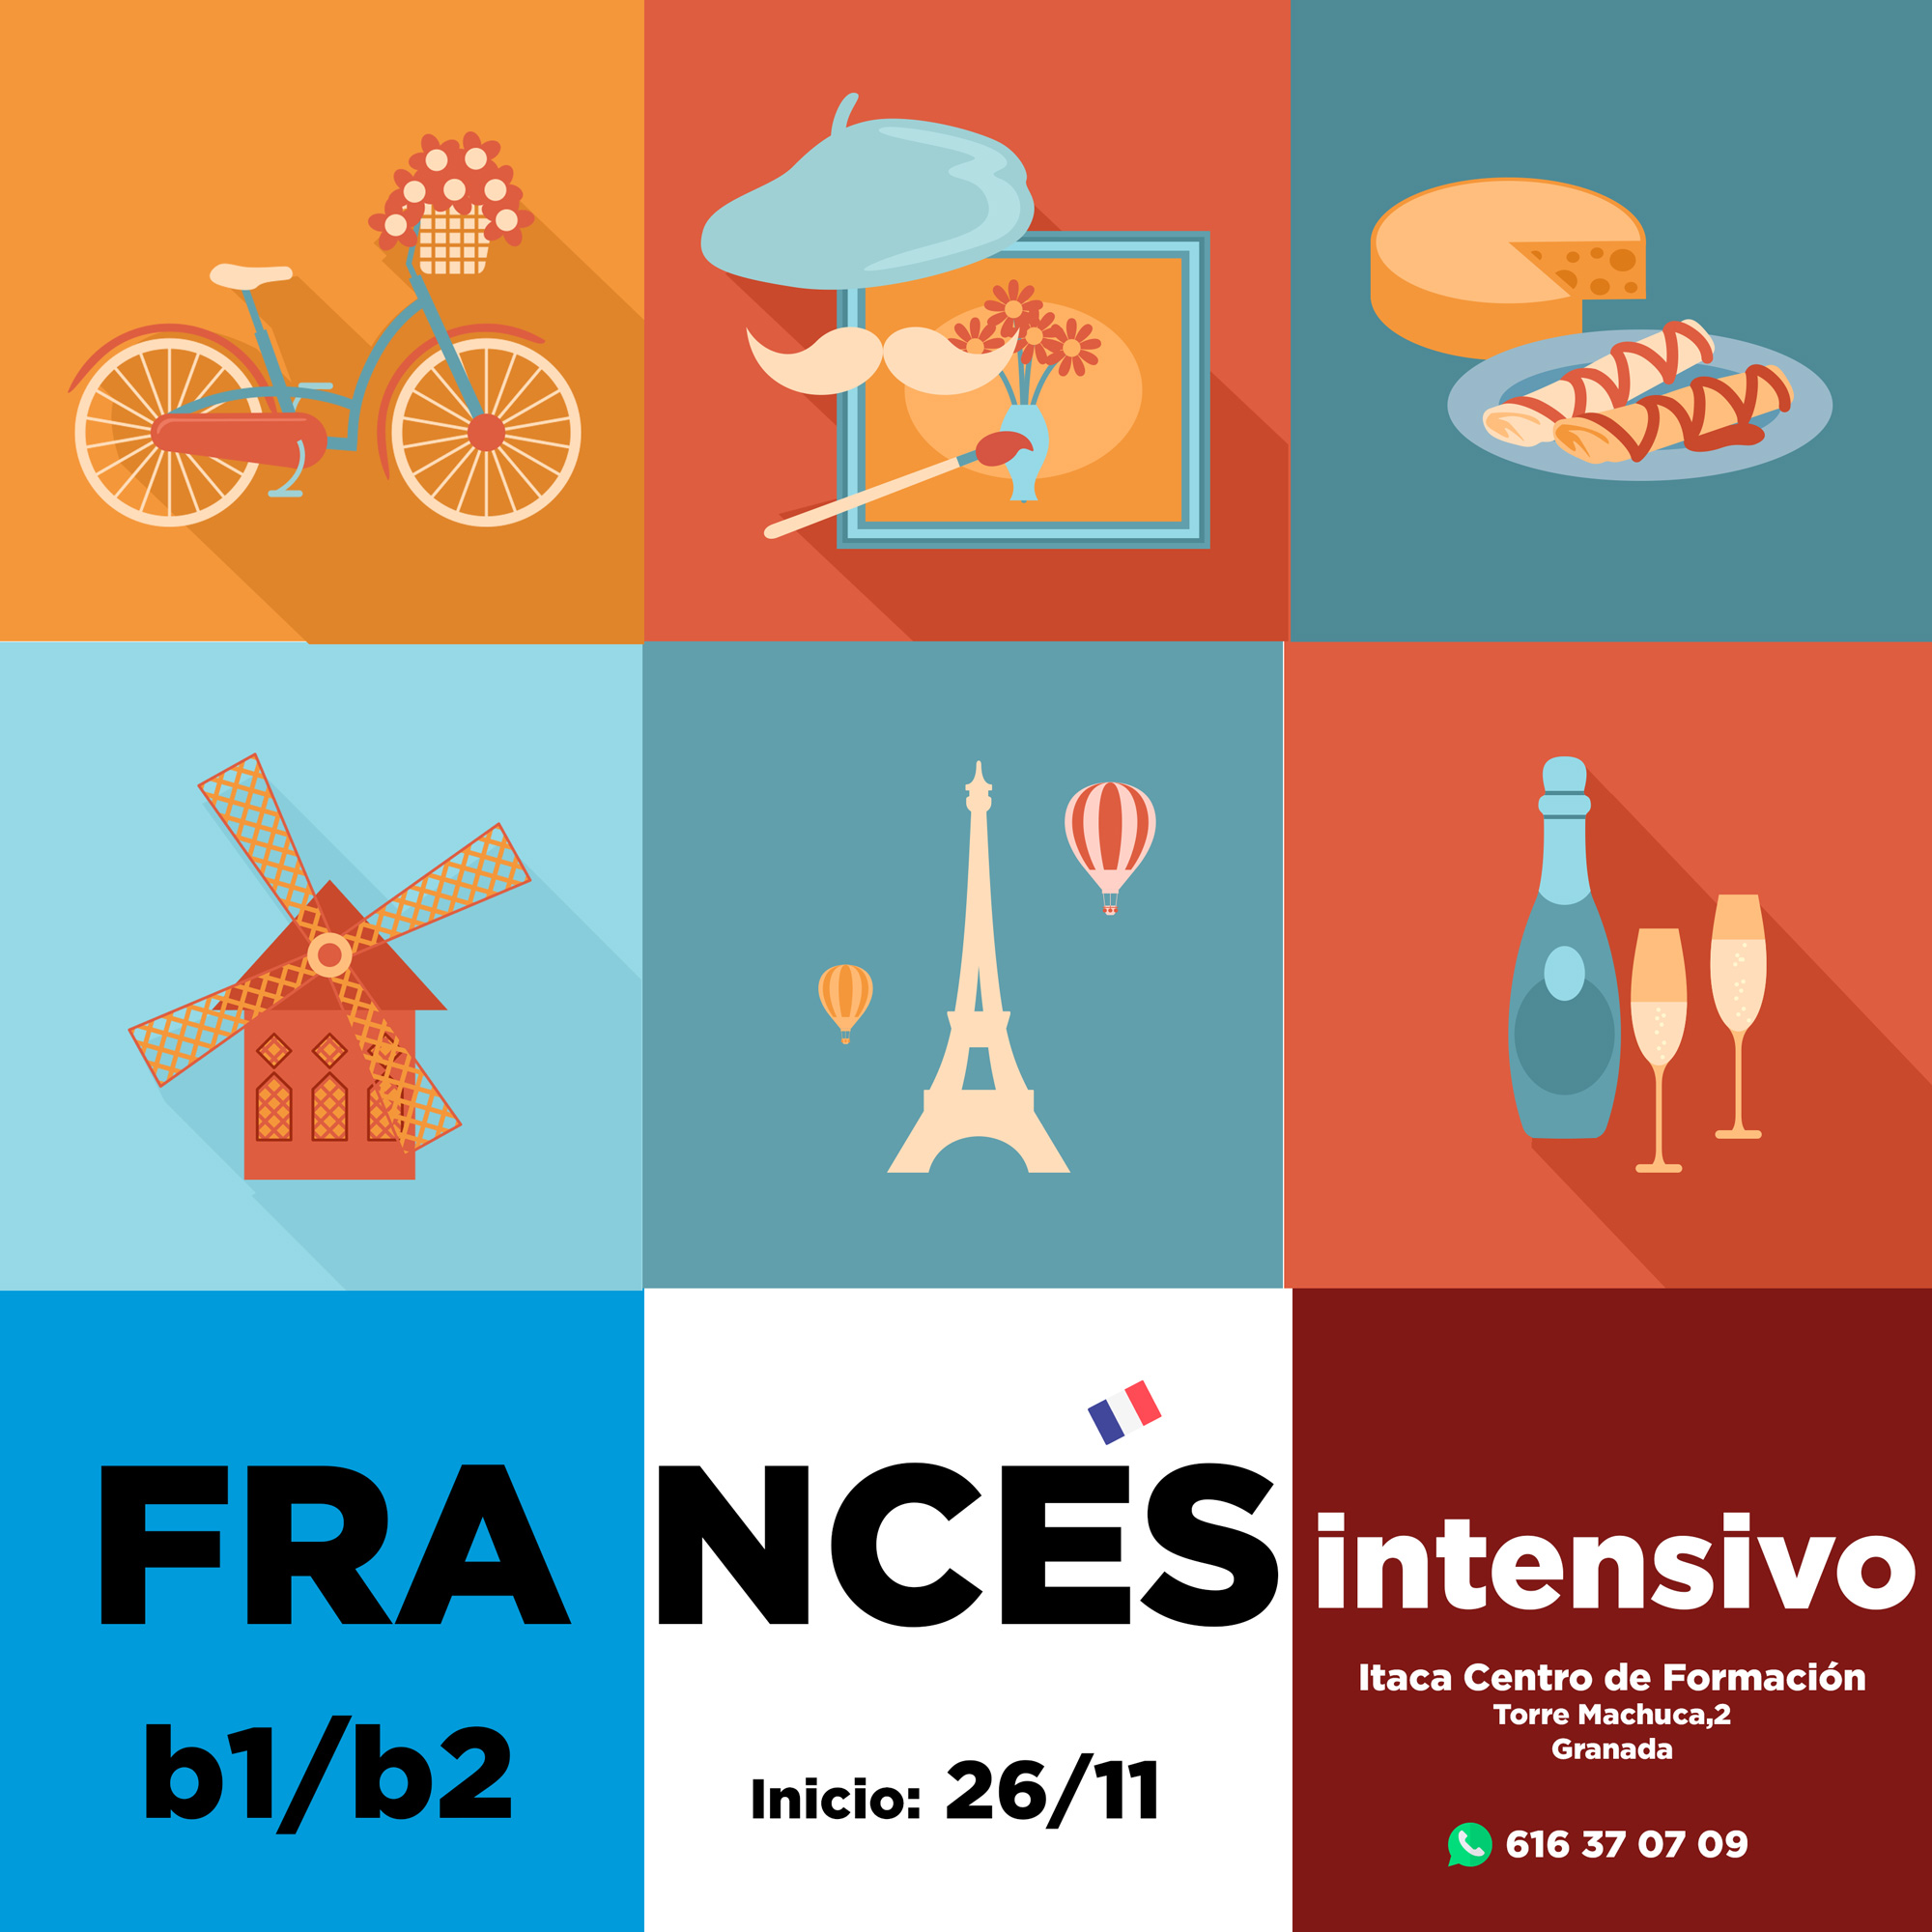 intensivo-frances-cartel